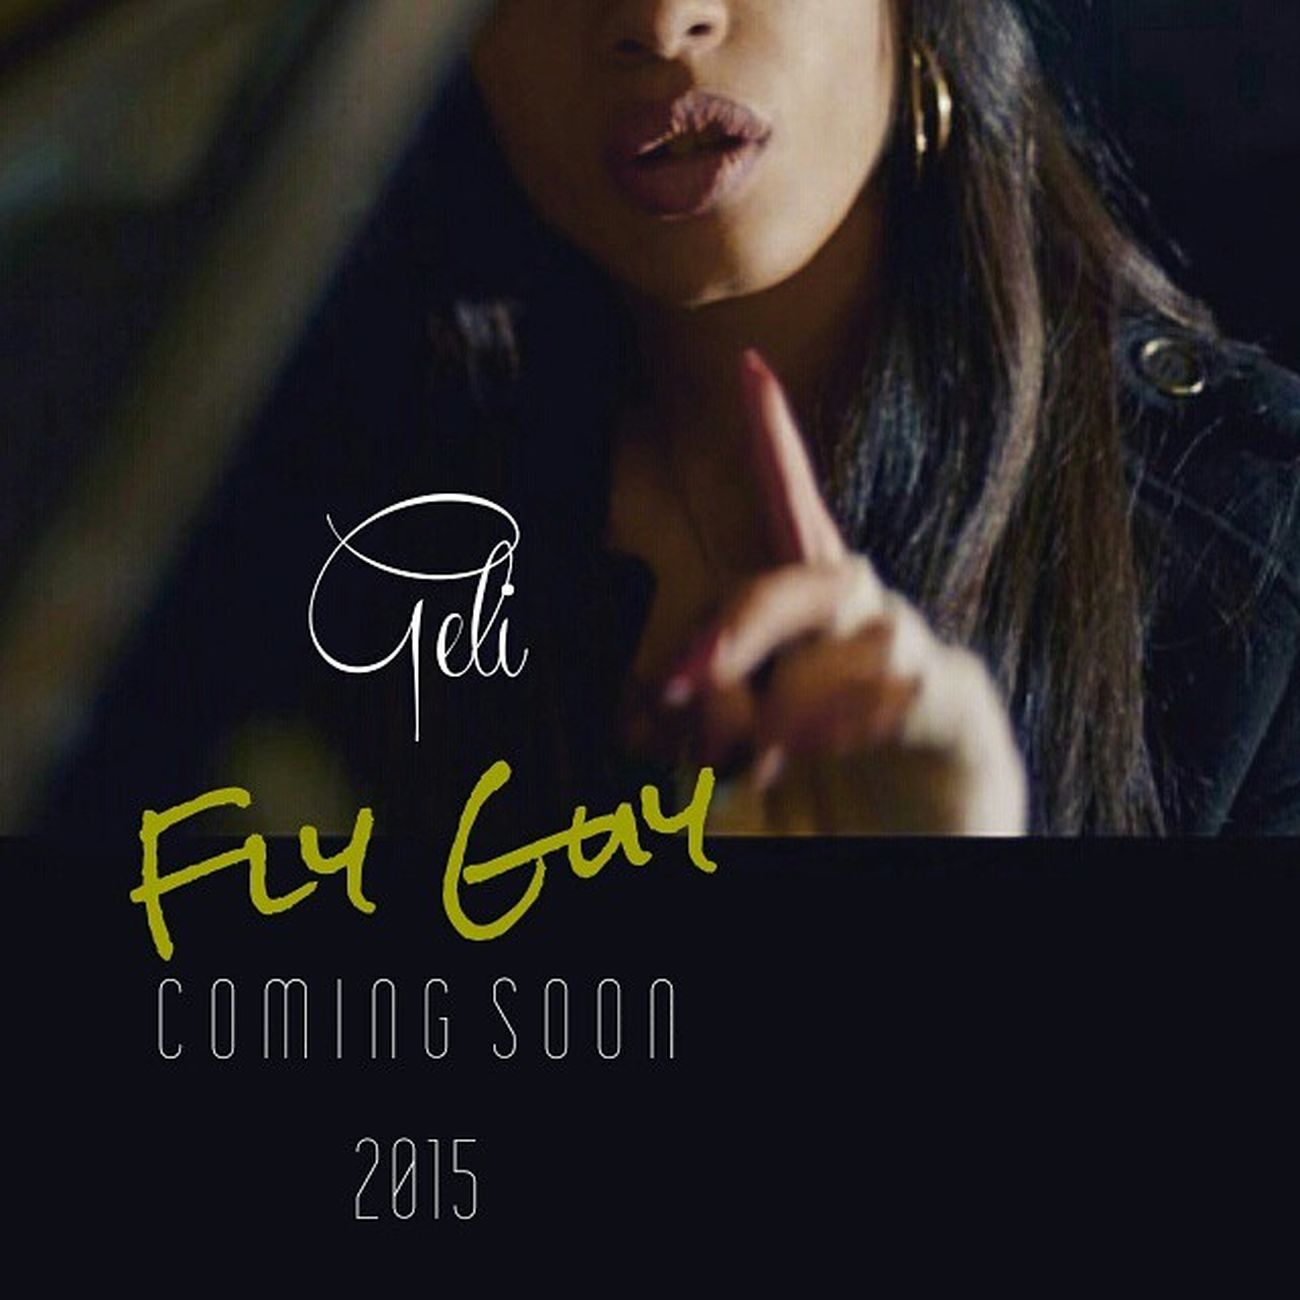 Good morning beautiful people! Just a reminder. FlyGuy is on Itunes and GooglePlay for pre order. For those who purchase the track,screenshot your purchase and then tag me @missoddbeauty. The lucky winner can win a spot in my next music video! 😊 Missoddbeauty FightLikeAGirl MusicVideo comingsoon 2015